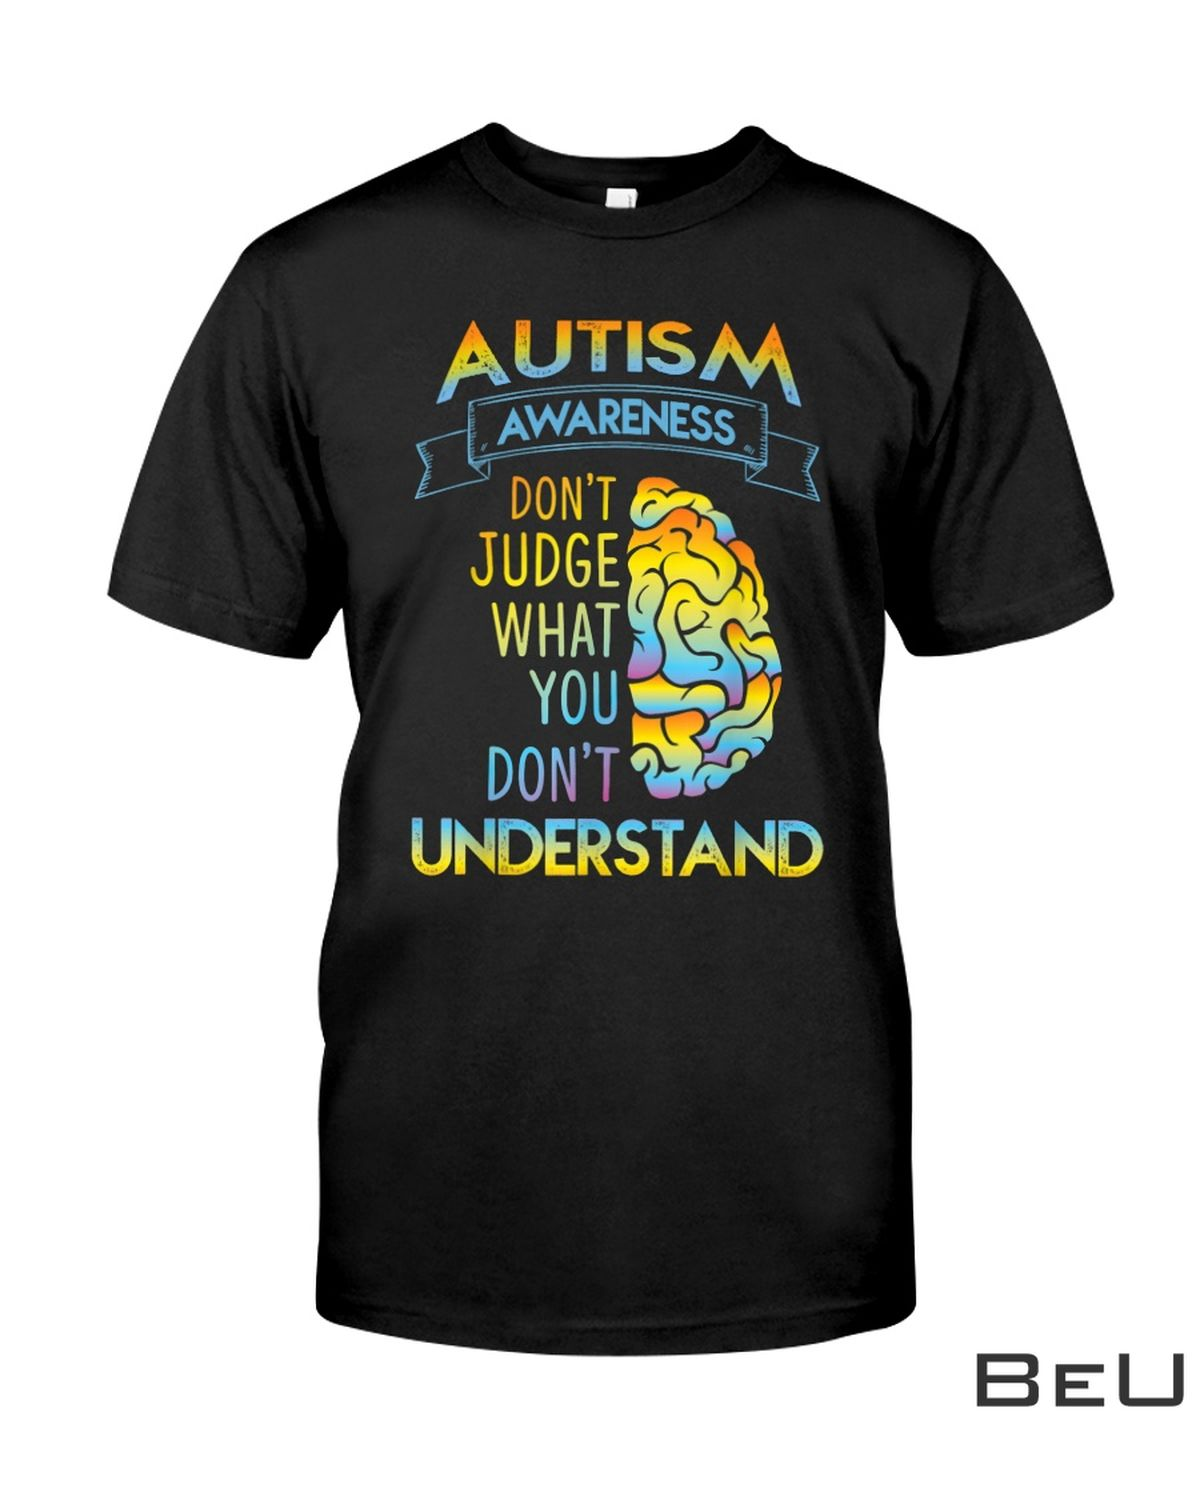 Autism Awareness Don't Judge What You Don't Understand Shirt